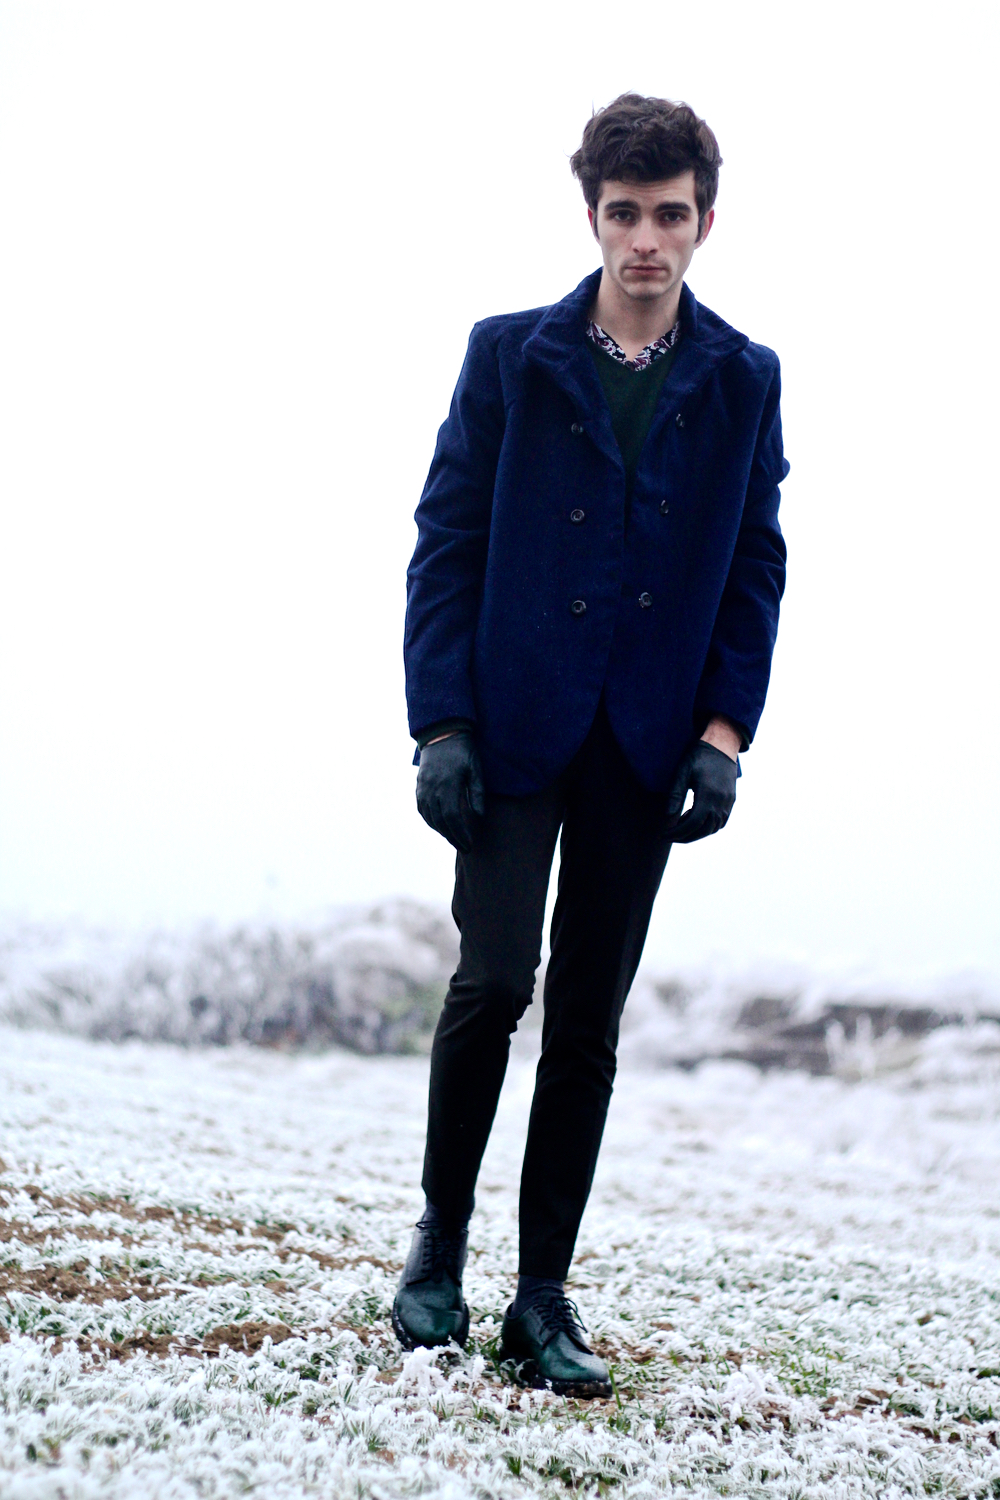 BLOG-MODE-HOMME-pull-cachemire-vert-american-vintage-churchs-leyton-chaussures-cuir-grine-cardigan-paysage-hiver-style-preppy-campagne-francais-dandy-jeune - 1 (1)